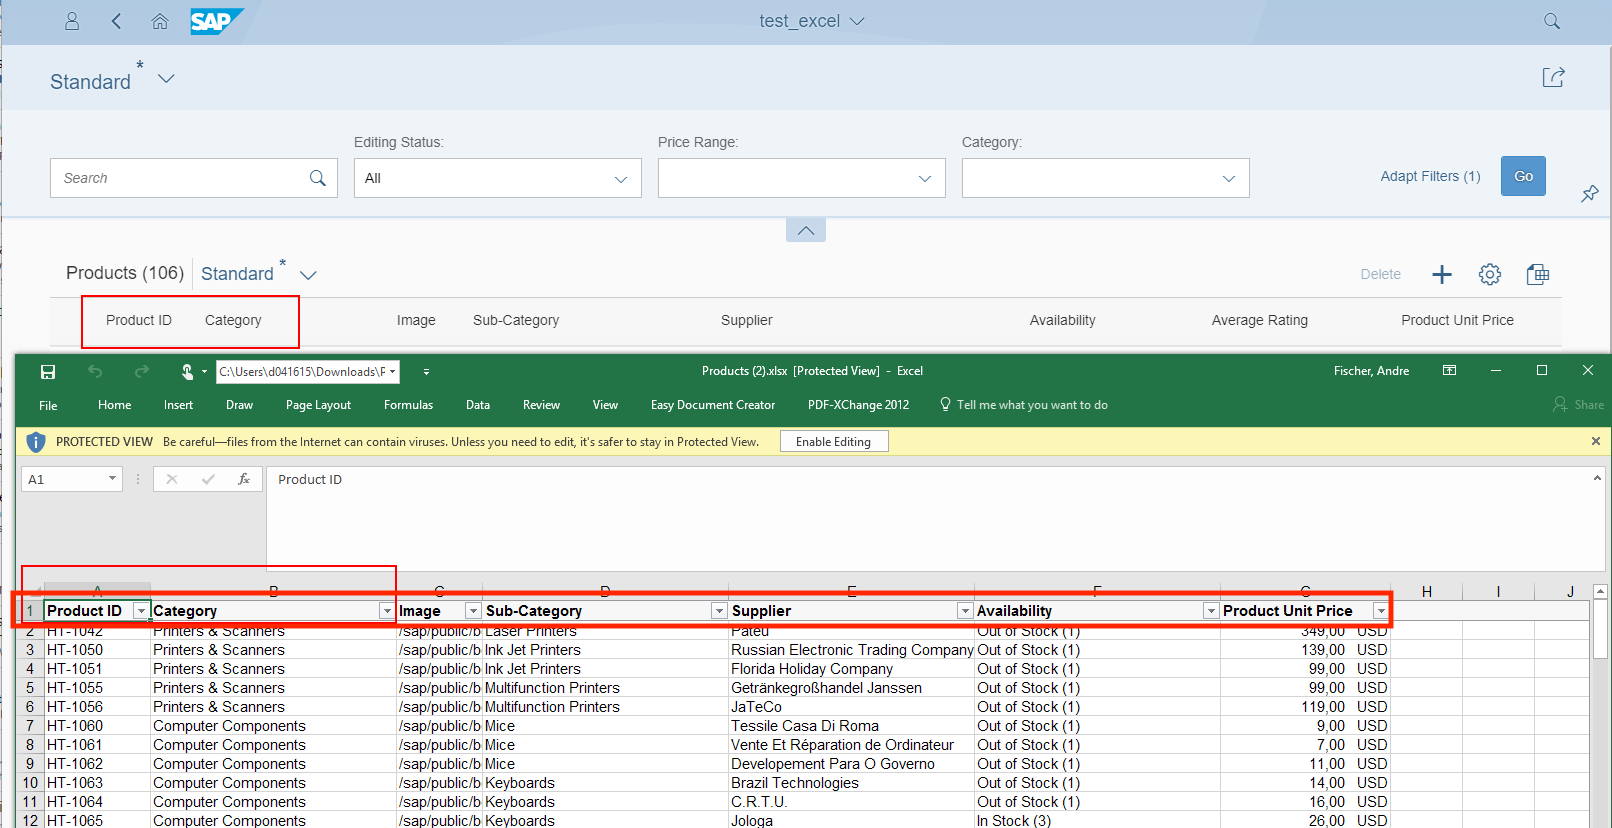 New Excel export functionality available | SAP Blogs